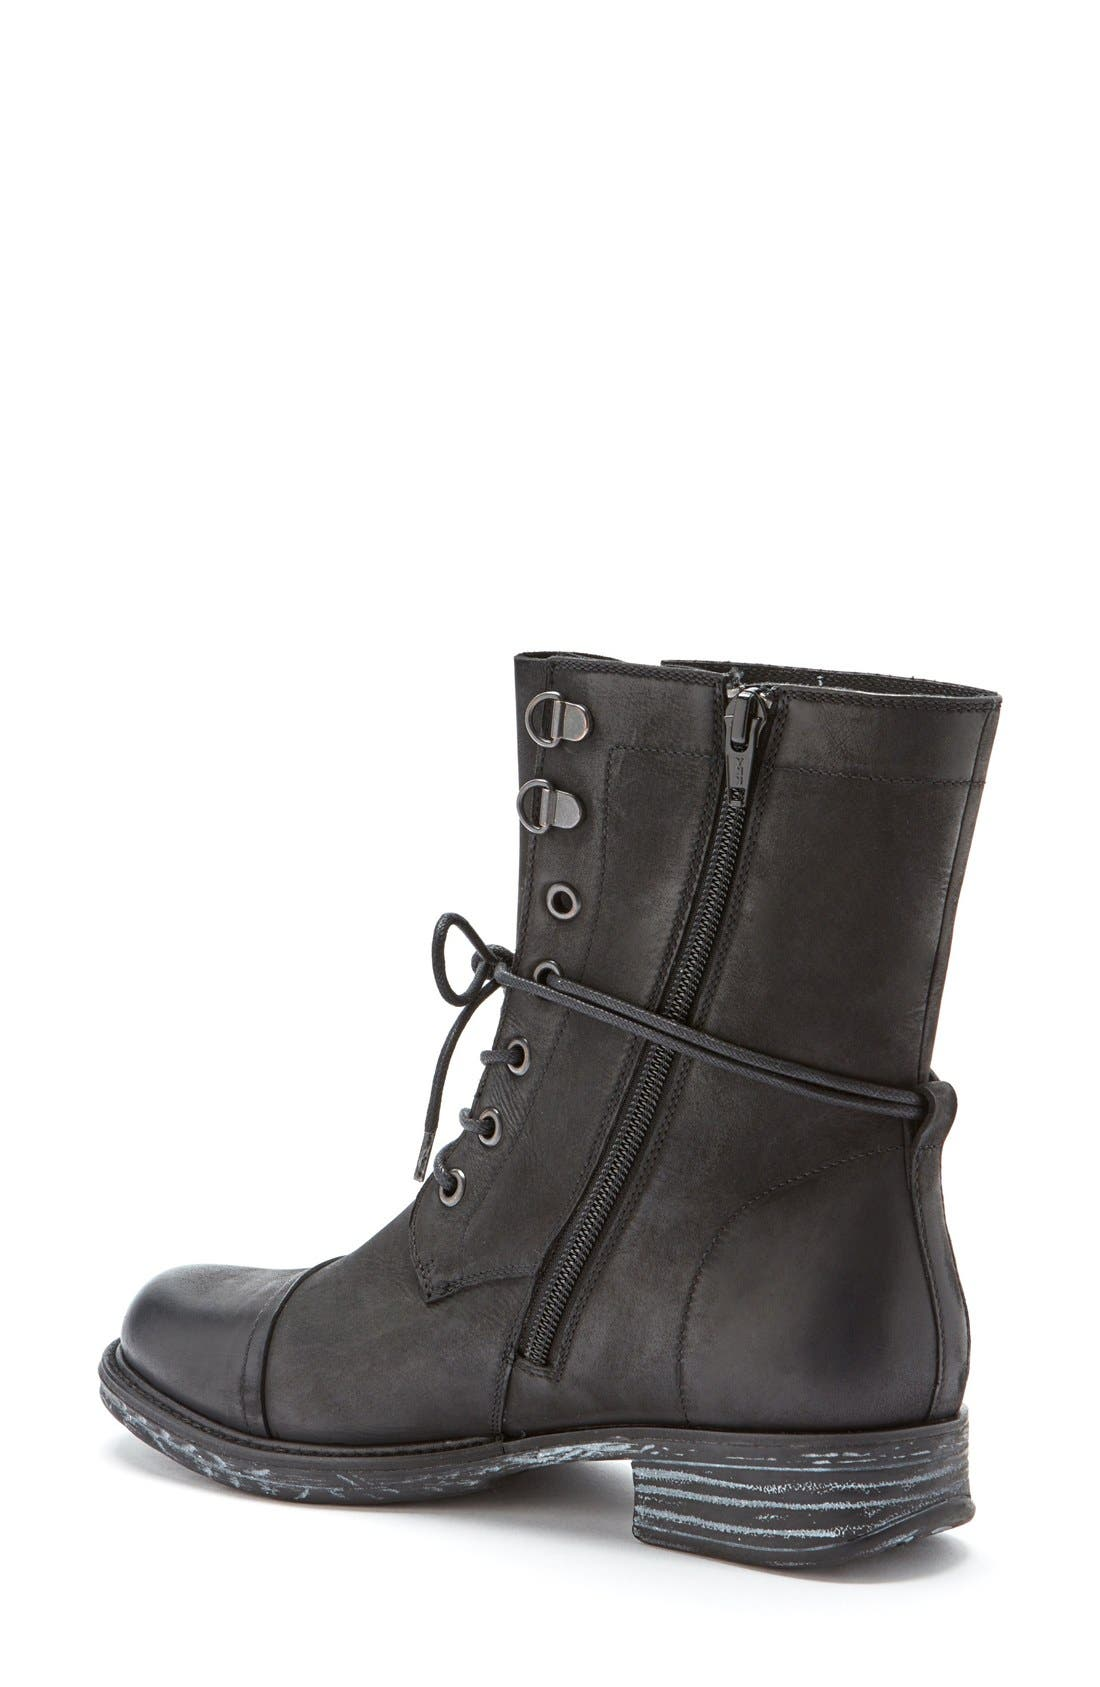 'Pyo' Waterproof Lace-Up Boot,                             Alternate thumbnail 2, color,                             001